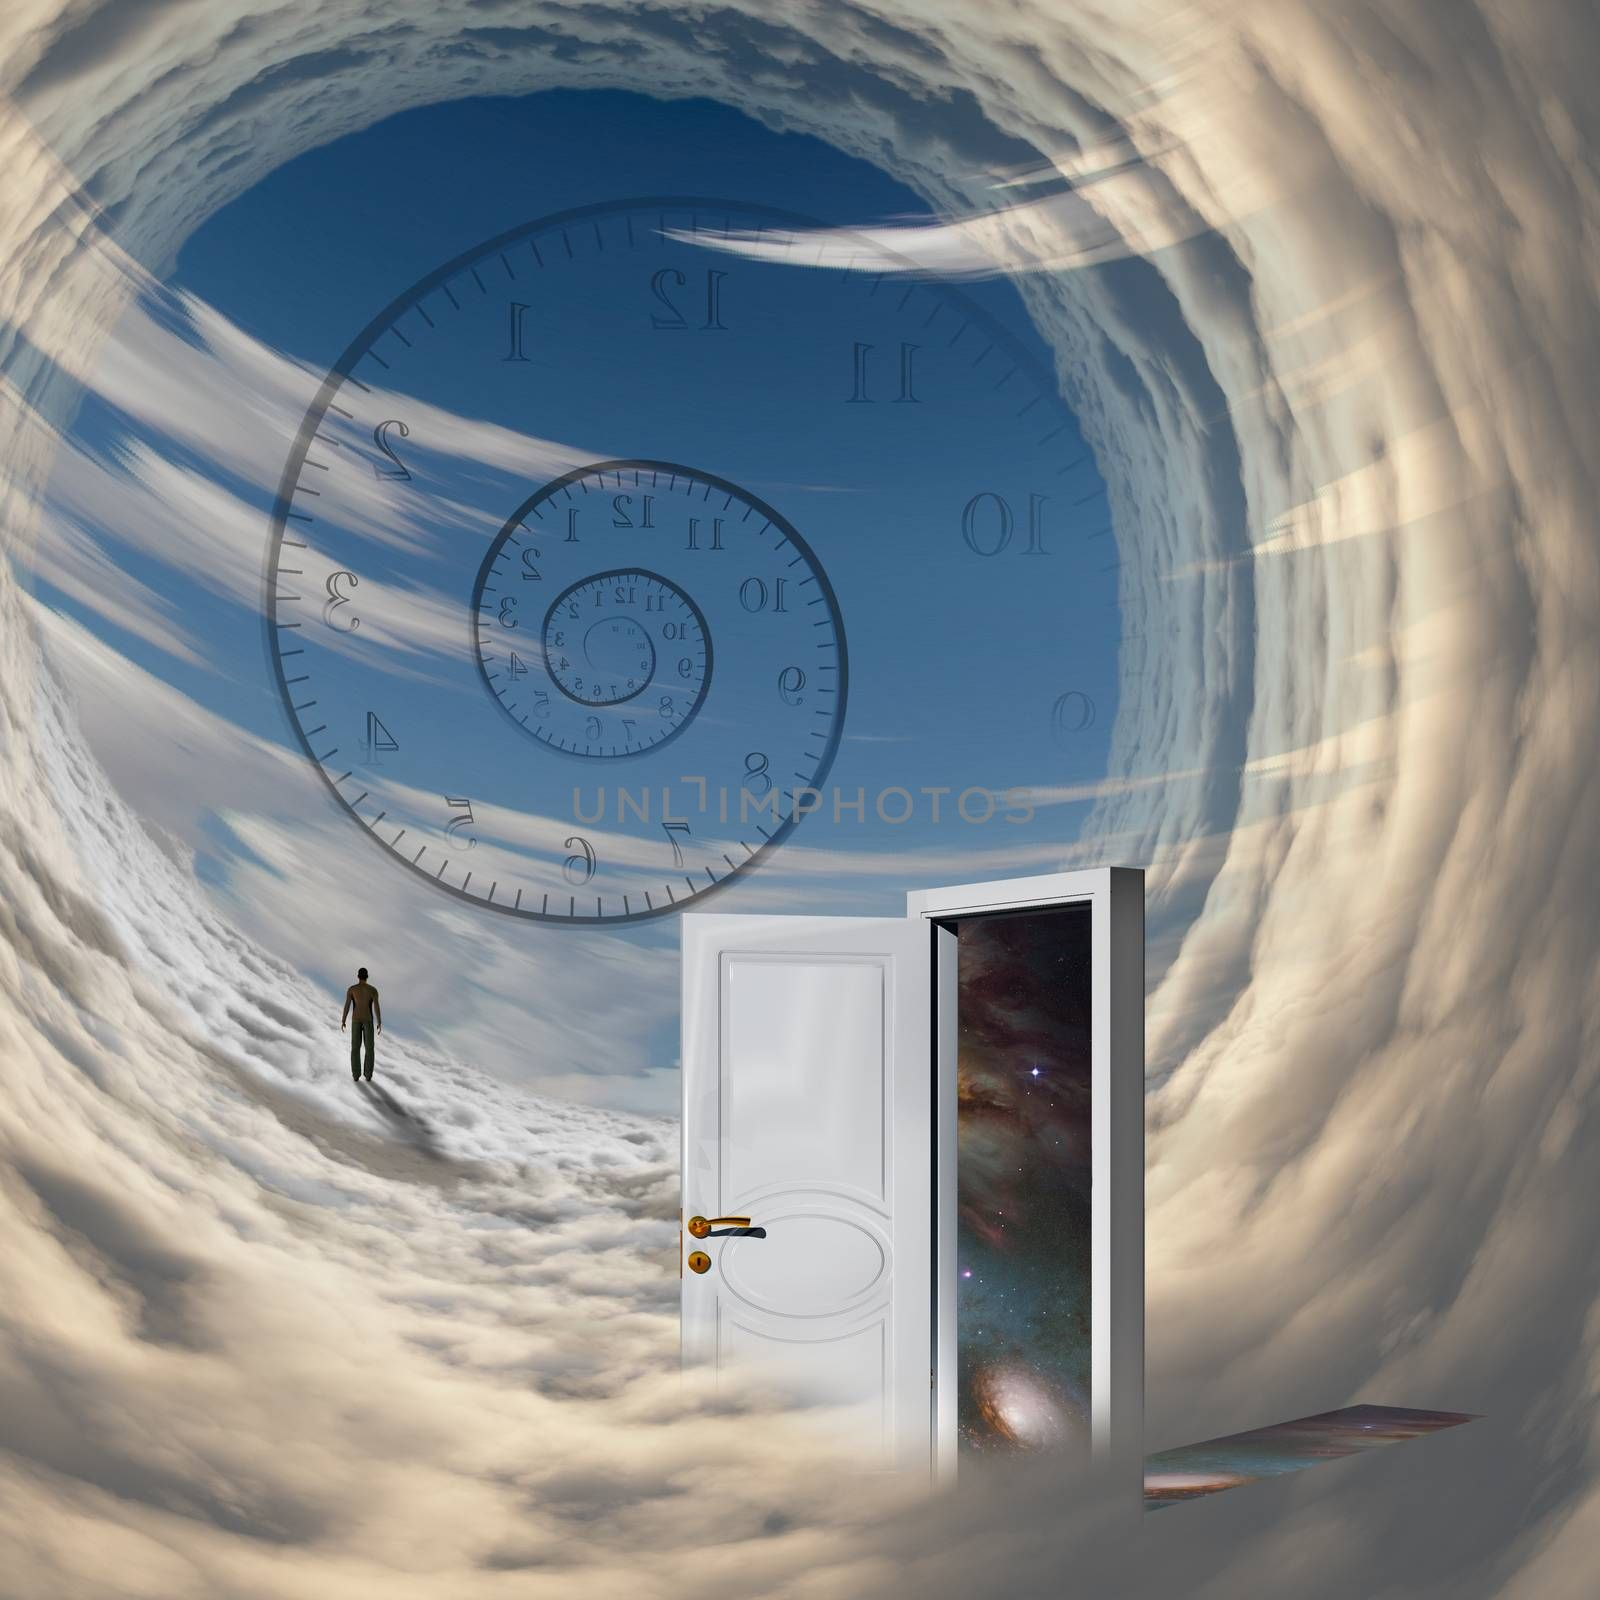 Surrealism. Spiral of time. Lonely man in a distance. Open door to another dimension. Time travel